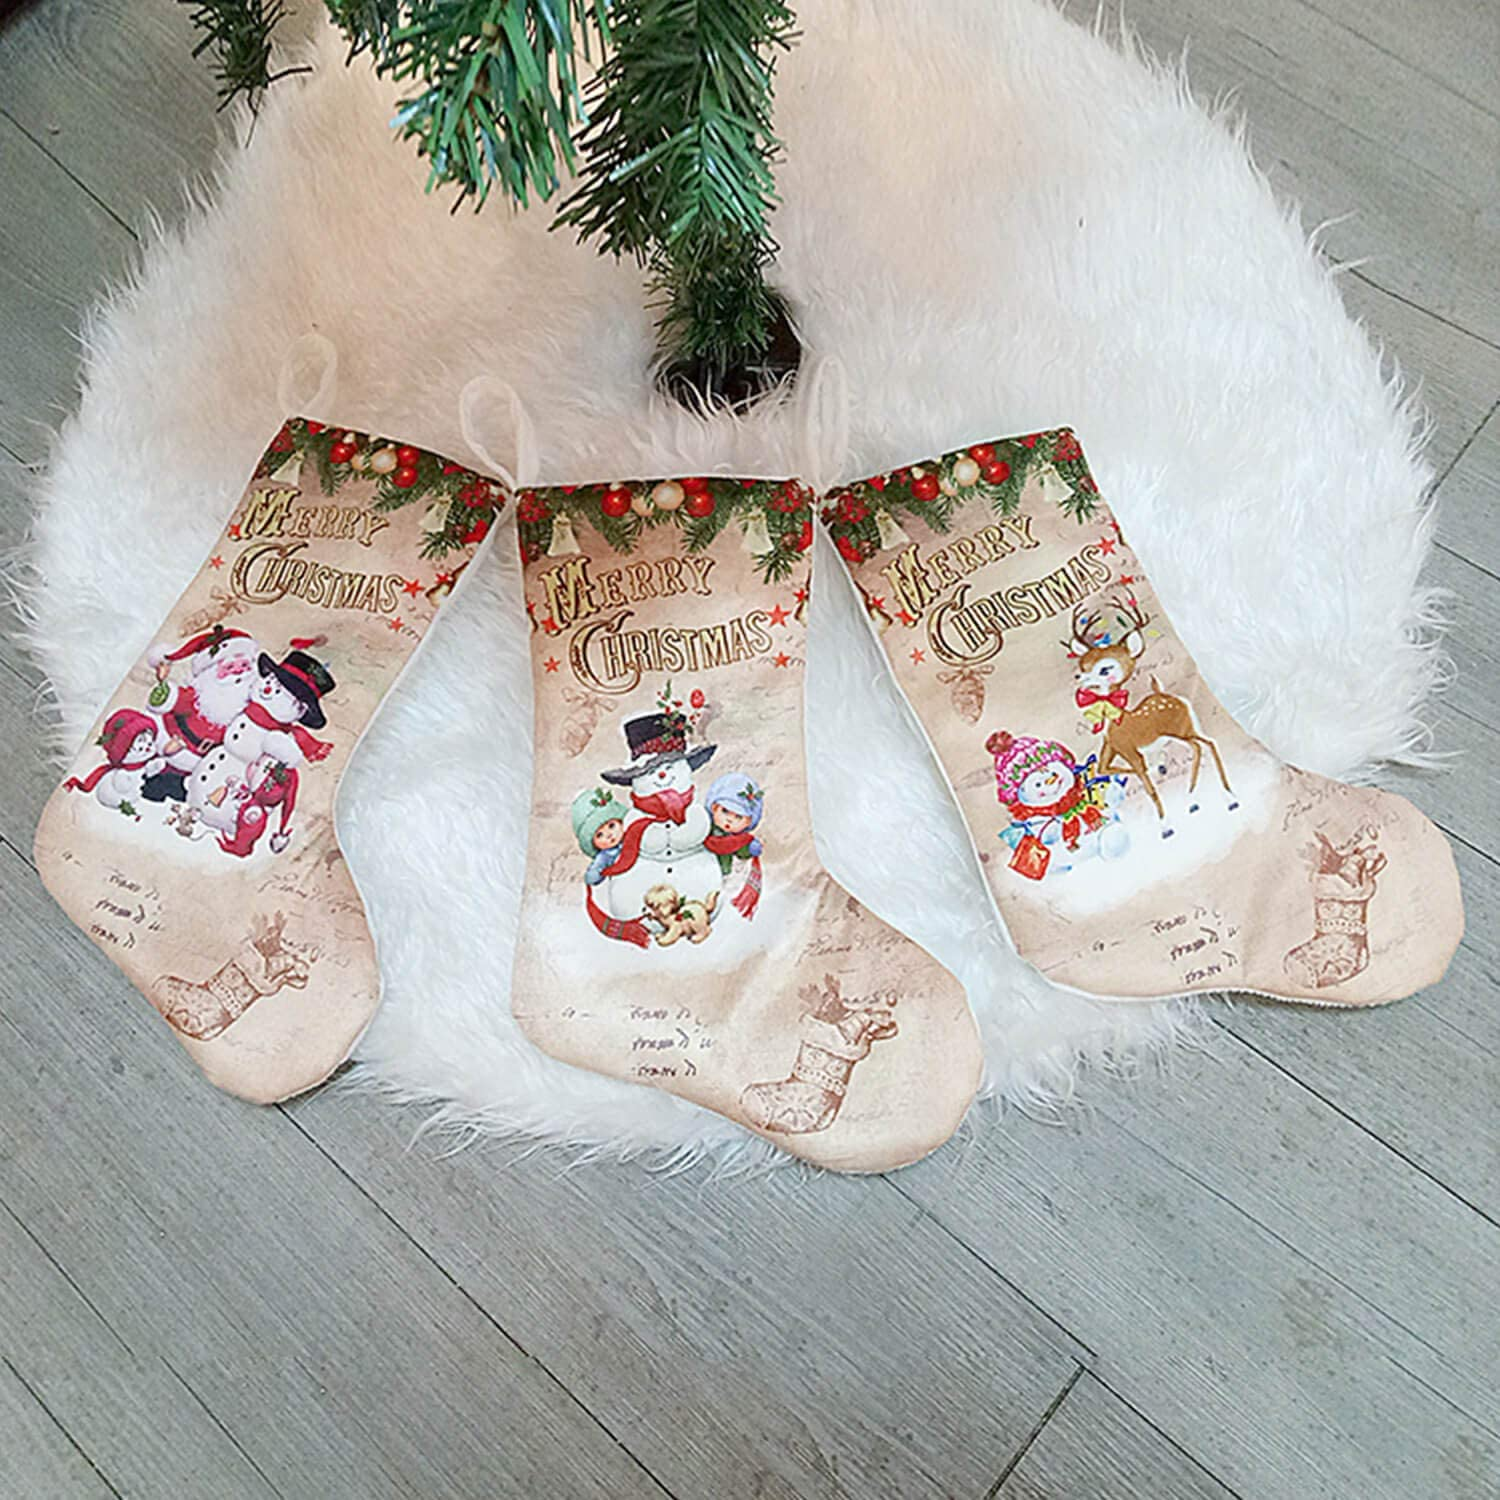 Beanlieve 3 Pieces Christmas Stockings - 11 Inch Xmas Stockings Kits, with Christmas Snowman Santa Reindeer Bear, for Xmas Party Hanging Holiday Mantel Decorate